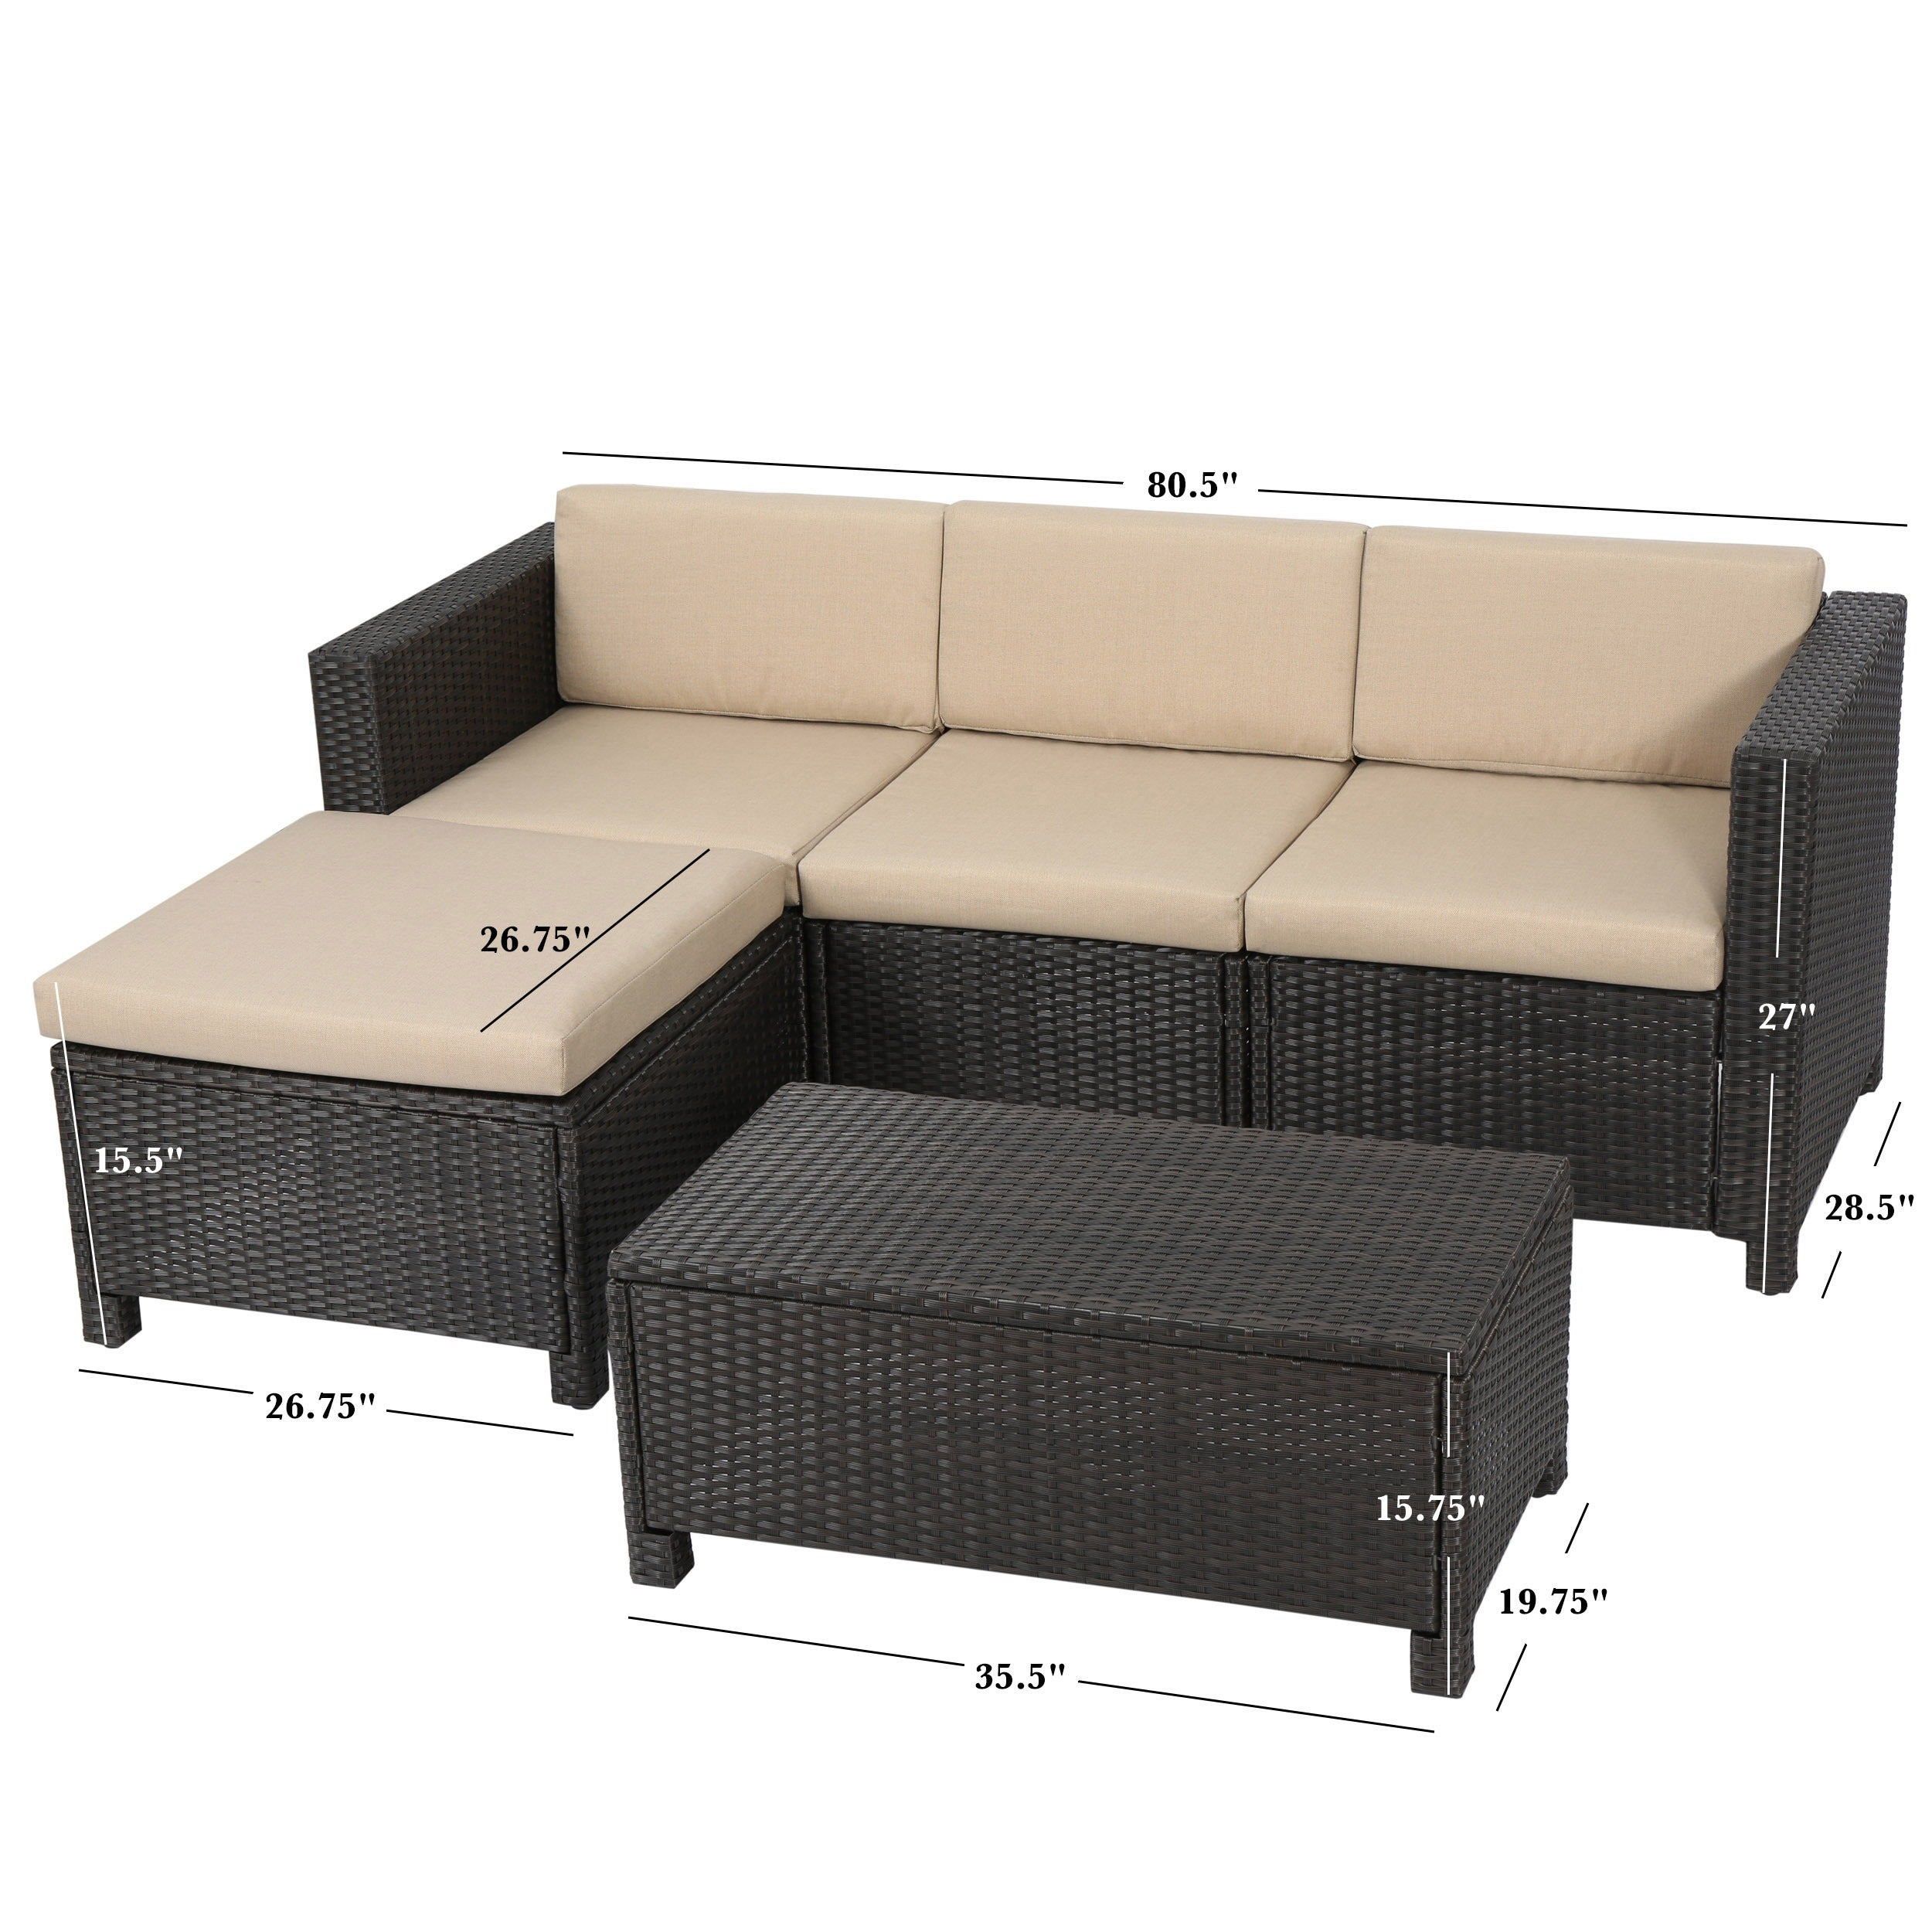 Outdoor Puerta PE Wicker L shaped Sectional 5 piece Sofa Set with